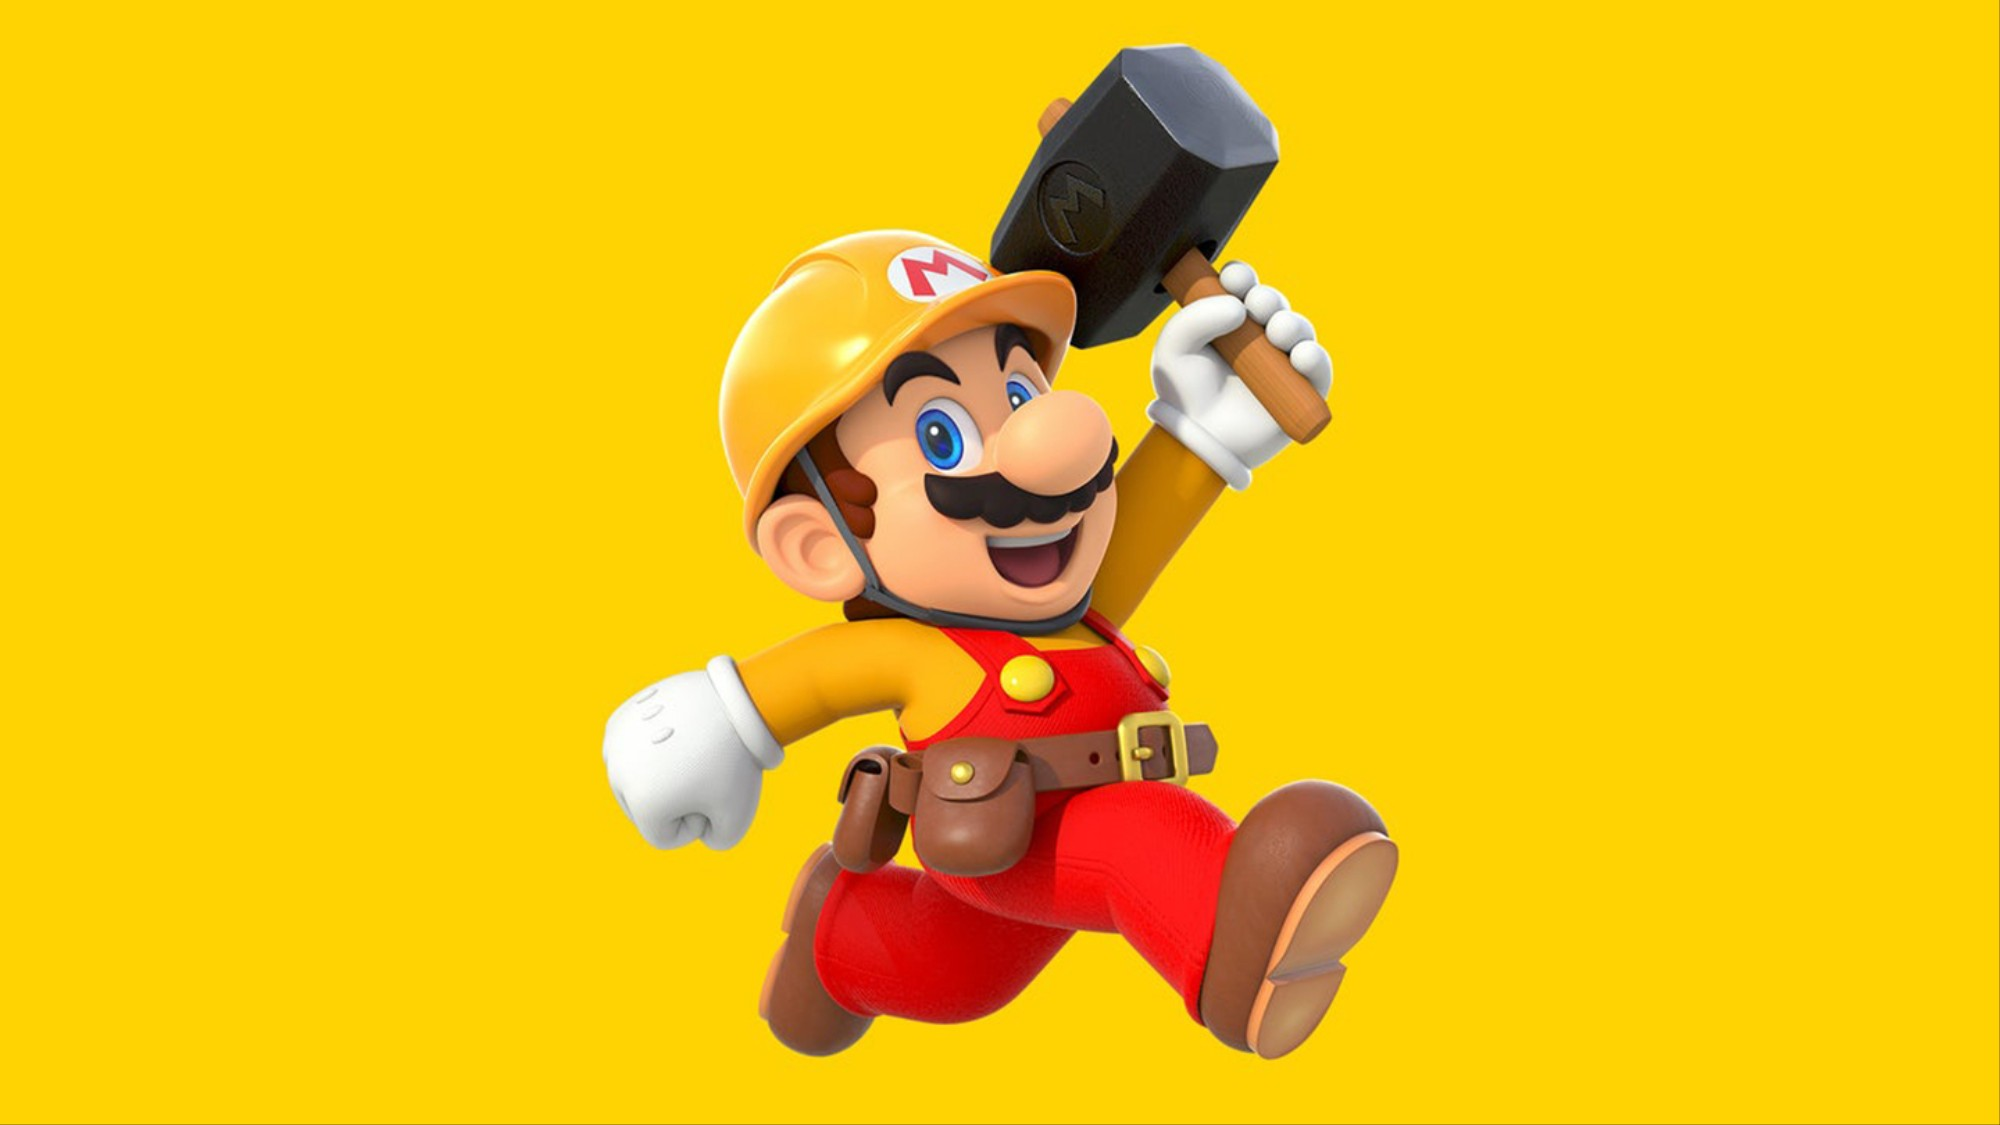 This 'Mario Maker' Level Has Been Played 2 6 Million Times